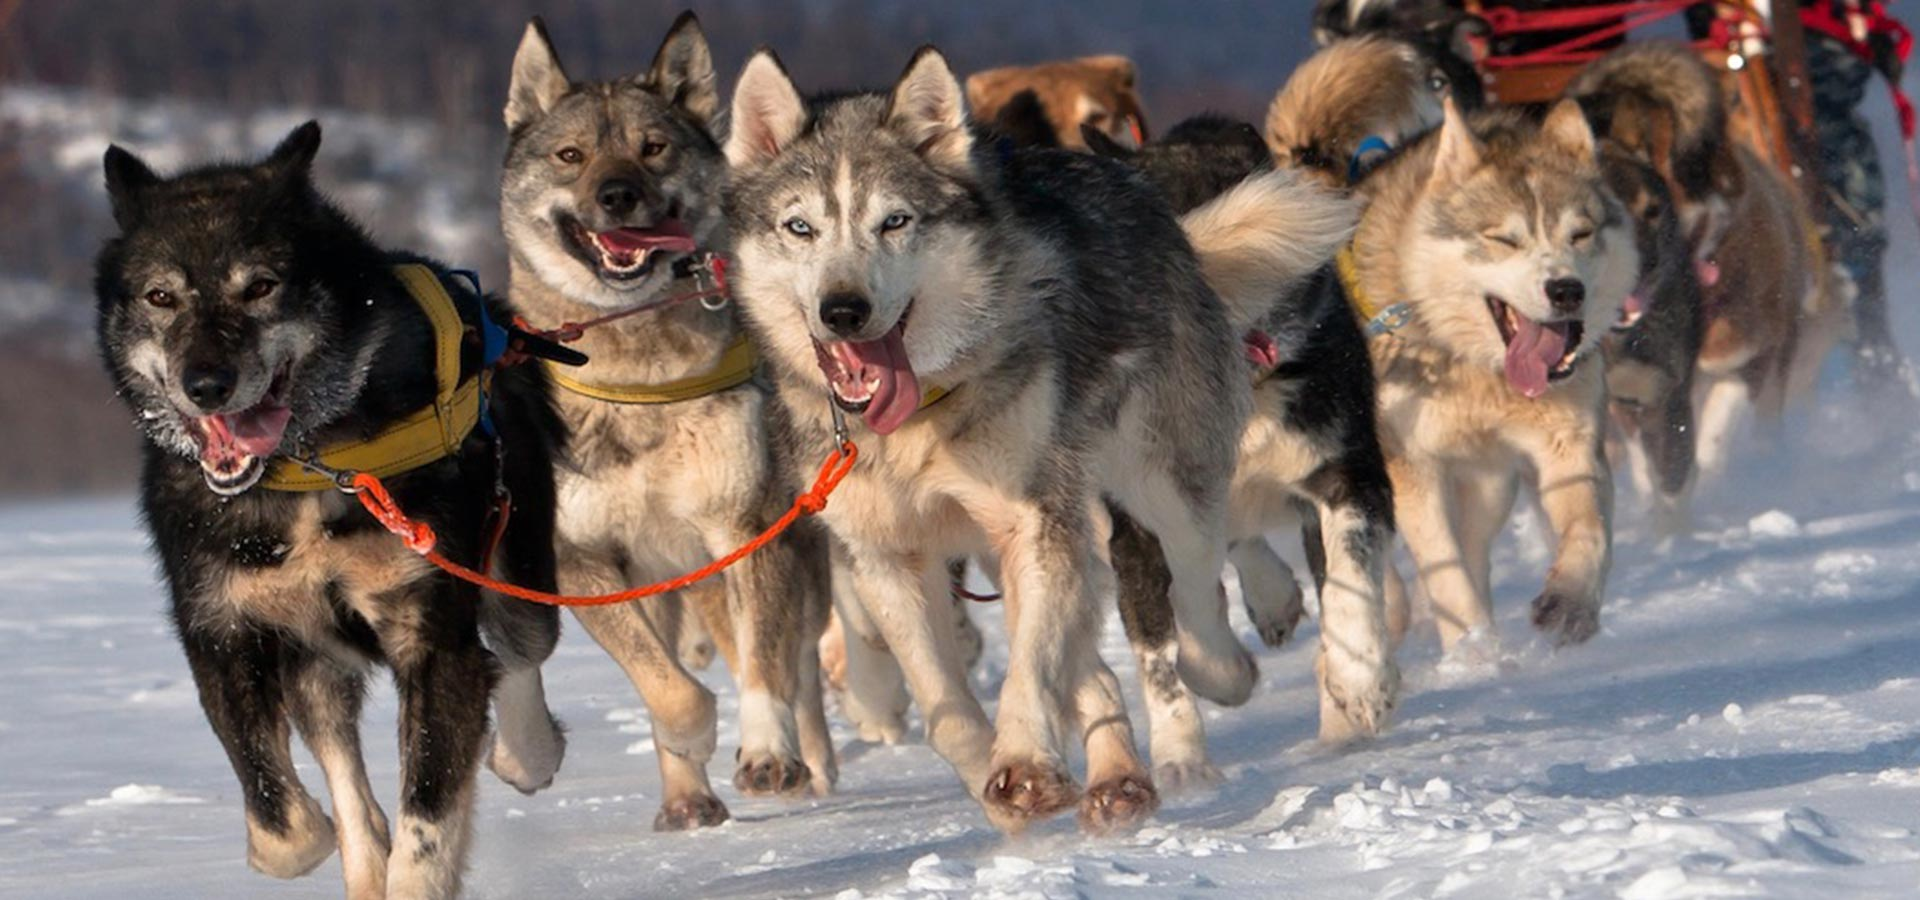 Alps dog sledding